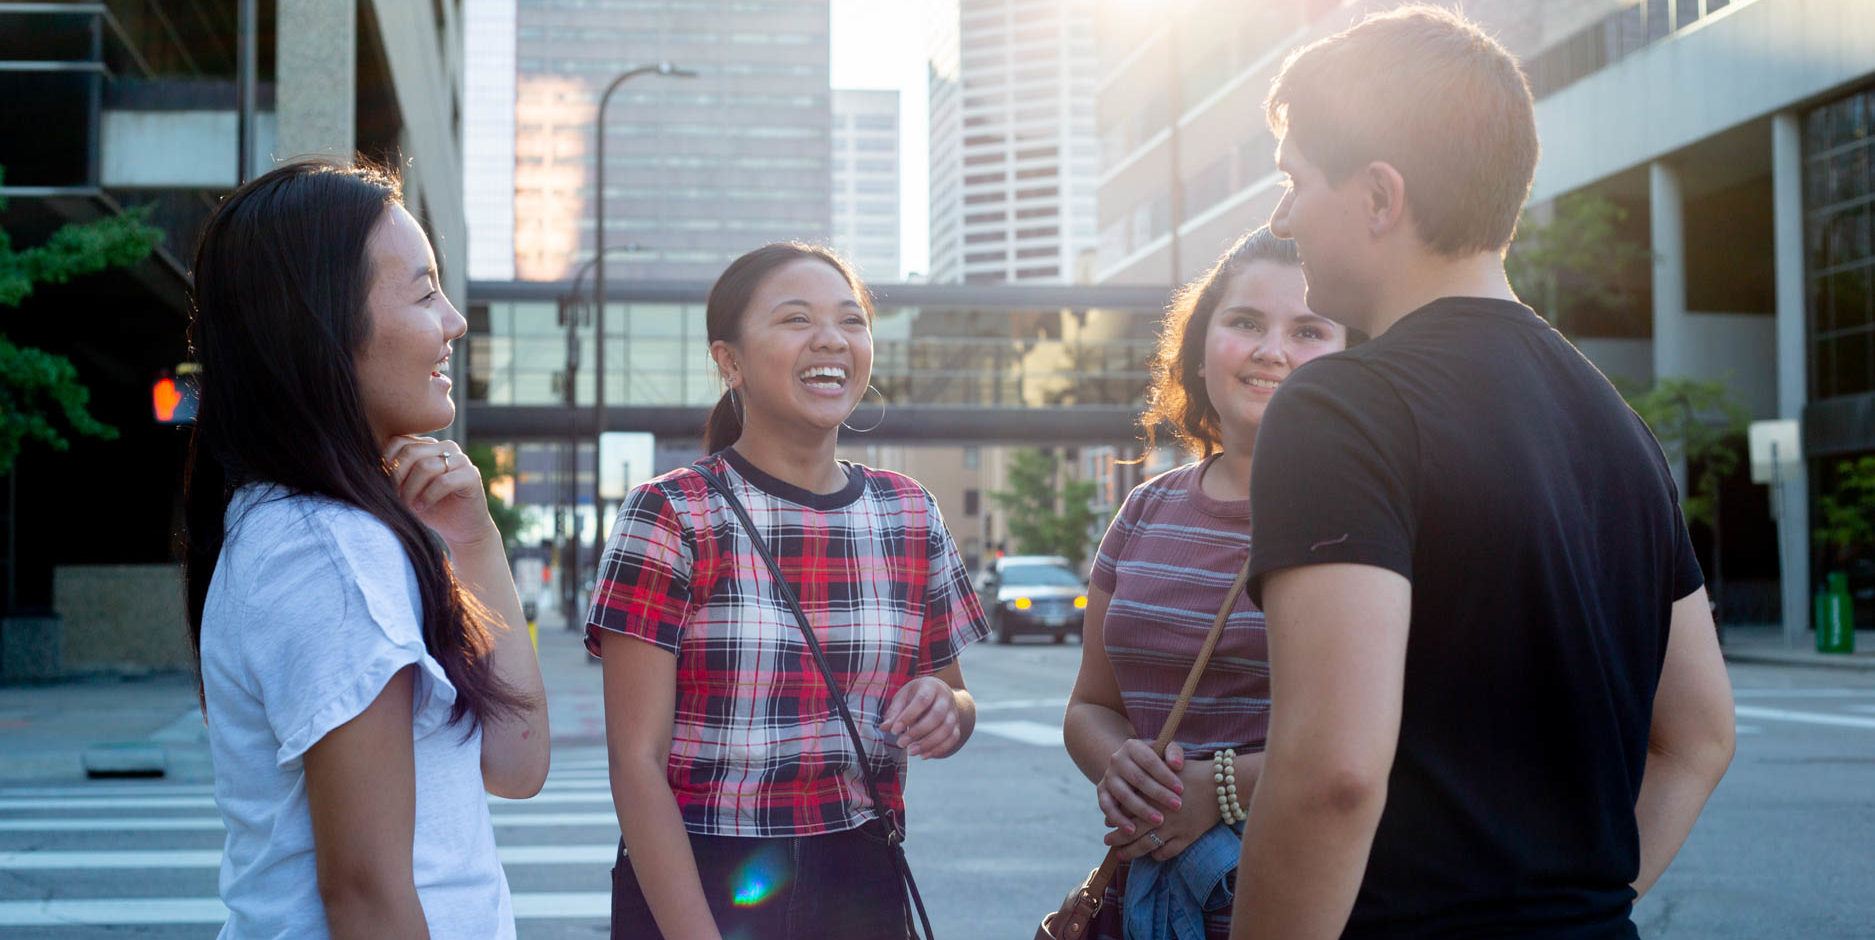 Group of students talking to each other on a sidewalk in downtown Minneapolis